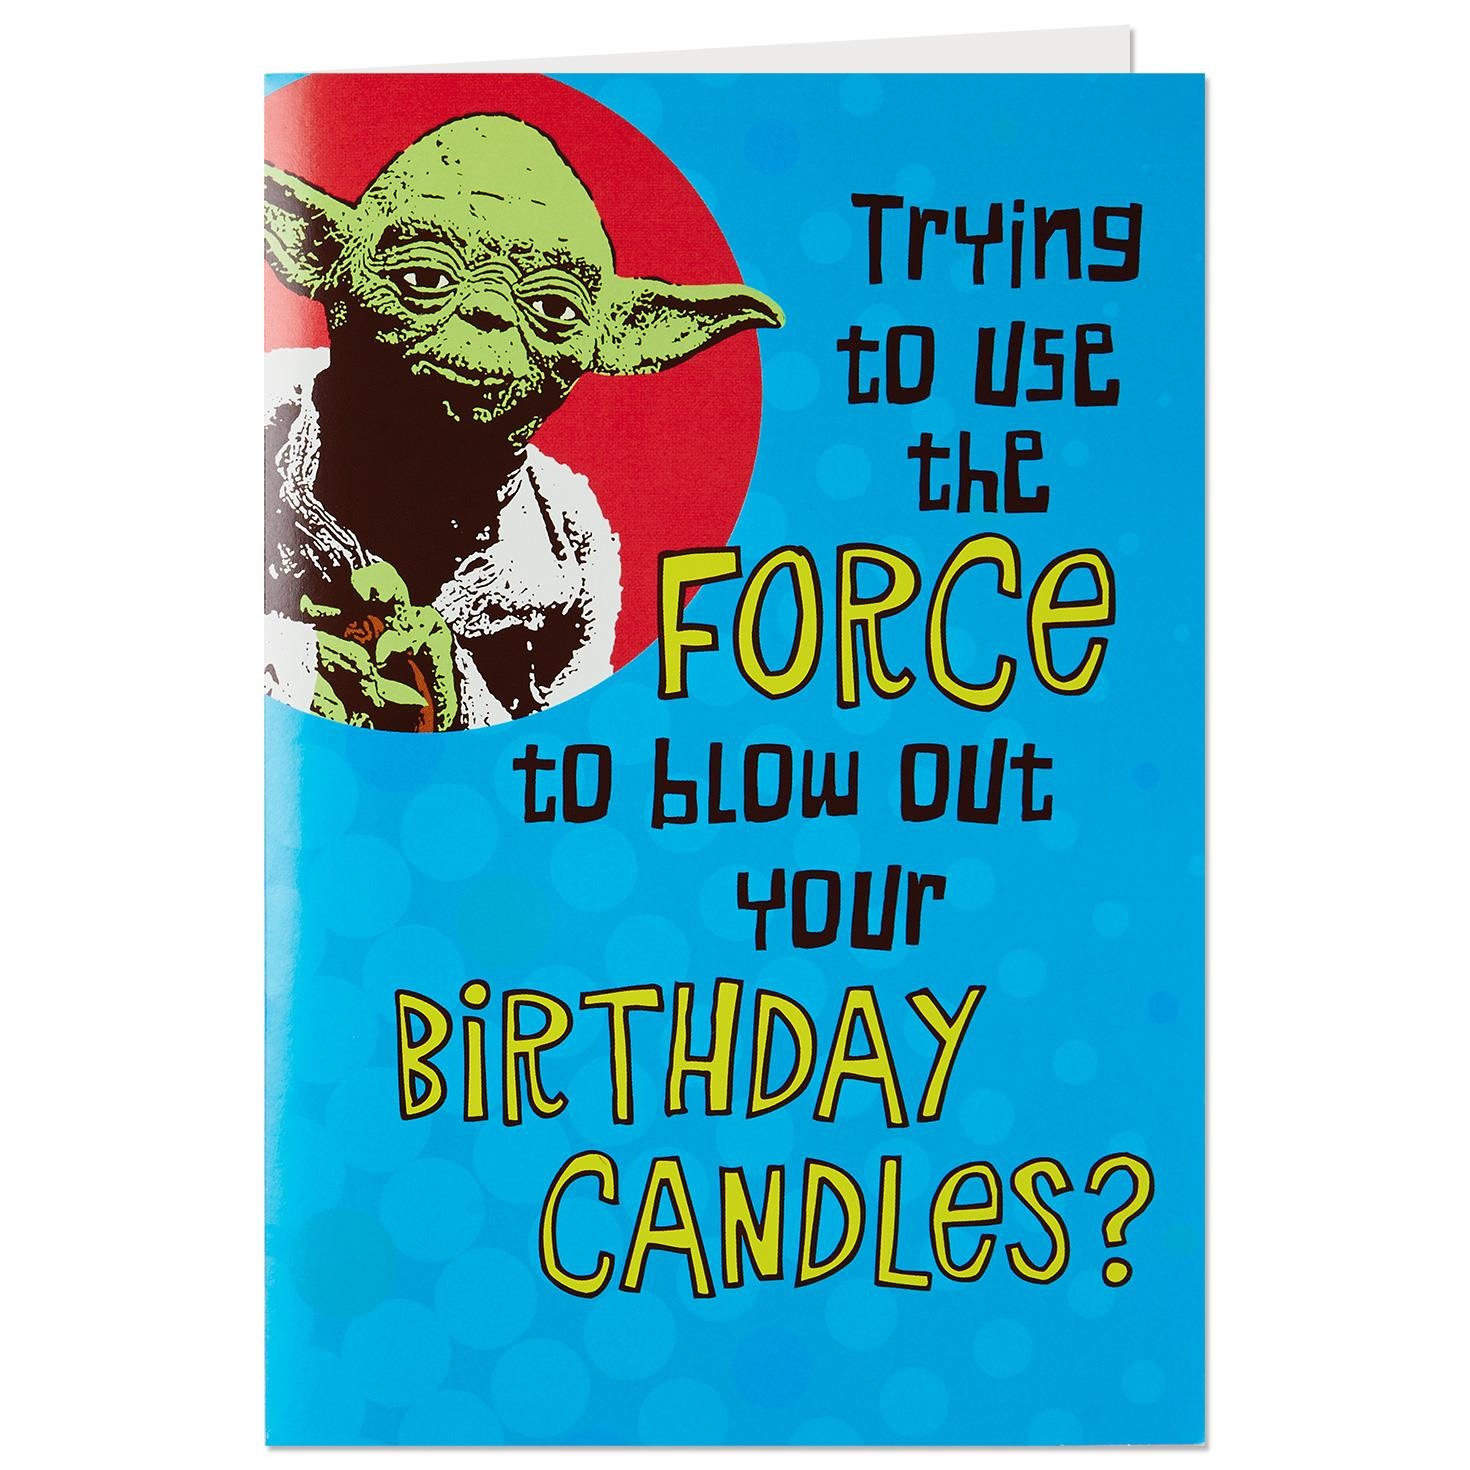 Star Wars Yoda Trick Candles Birthday Card With Sound And Light